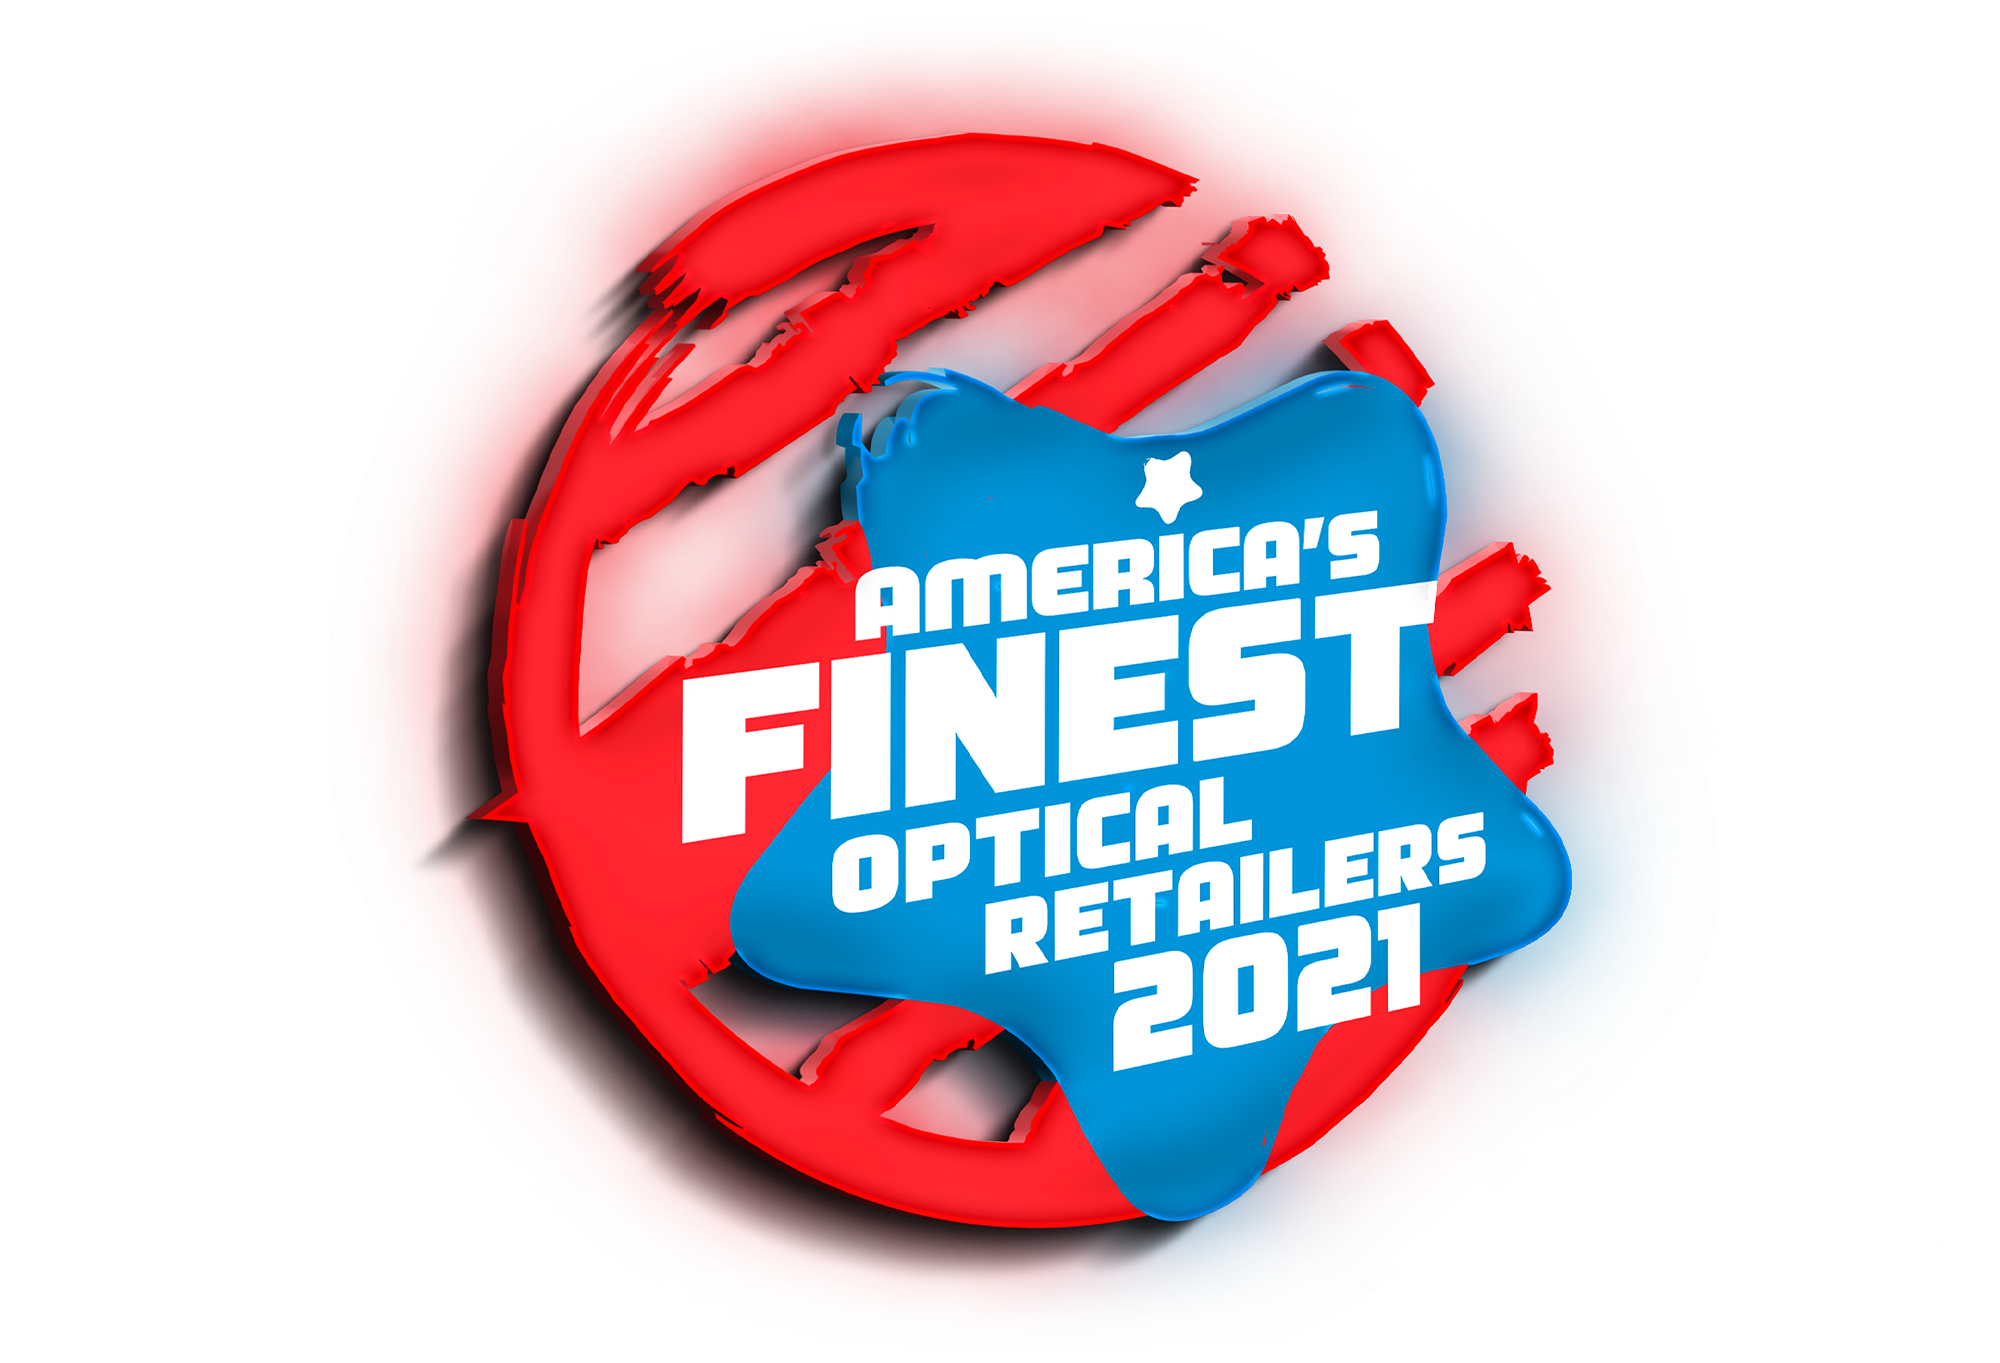 America's Finest Optical Retailers 2021